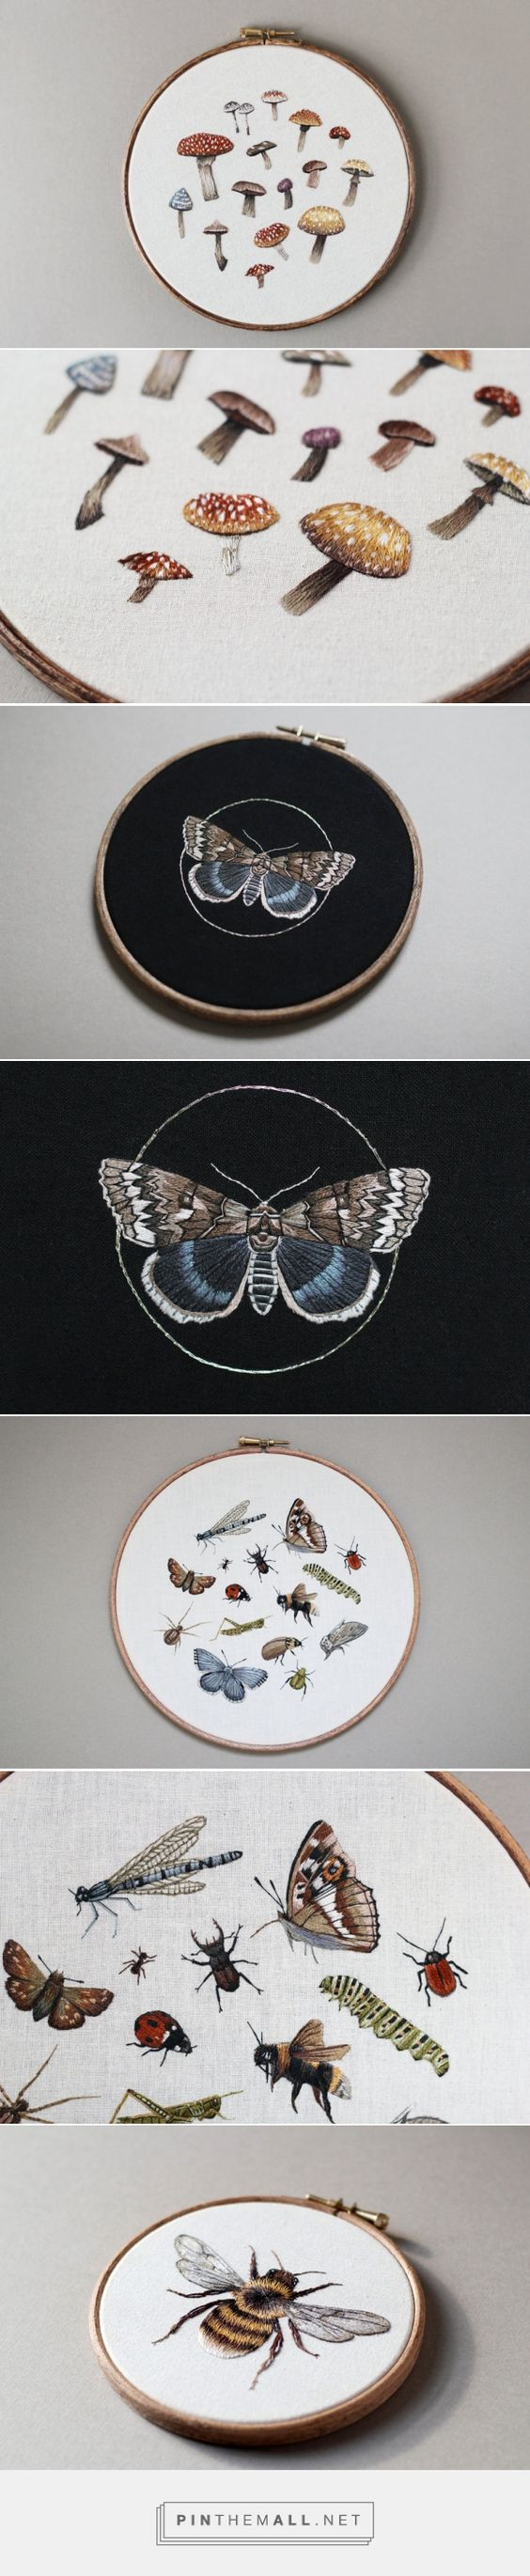 Embroidered Mushrooms, Animals, and Other Forest Creatures by Emillie Ferris | Colossal